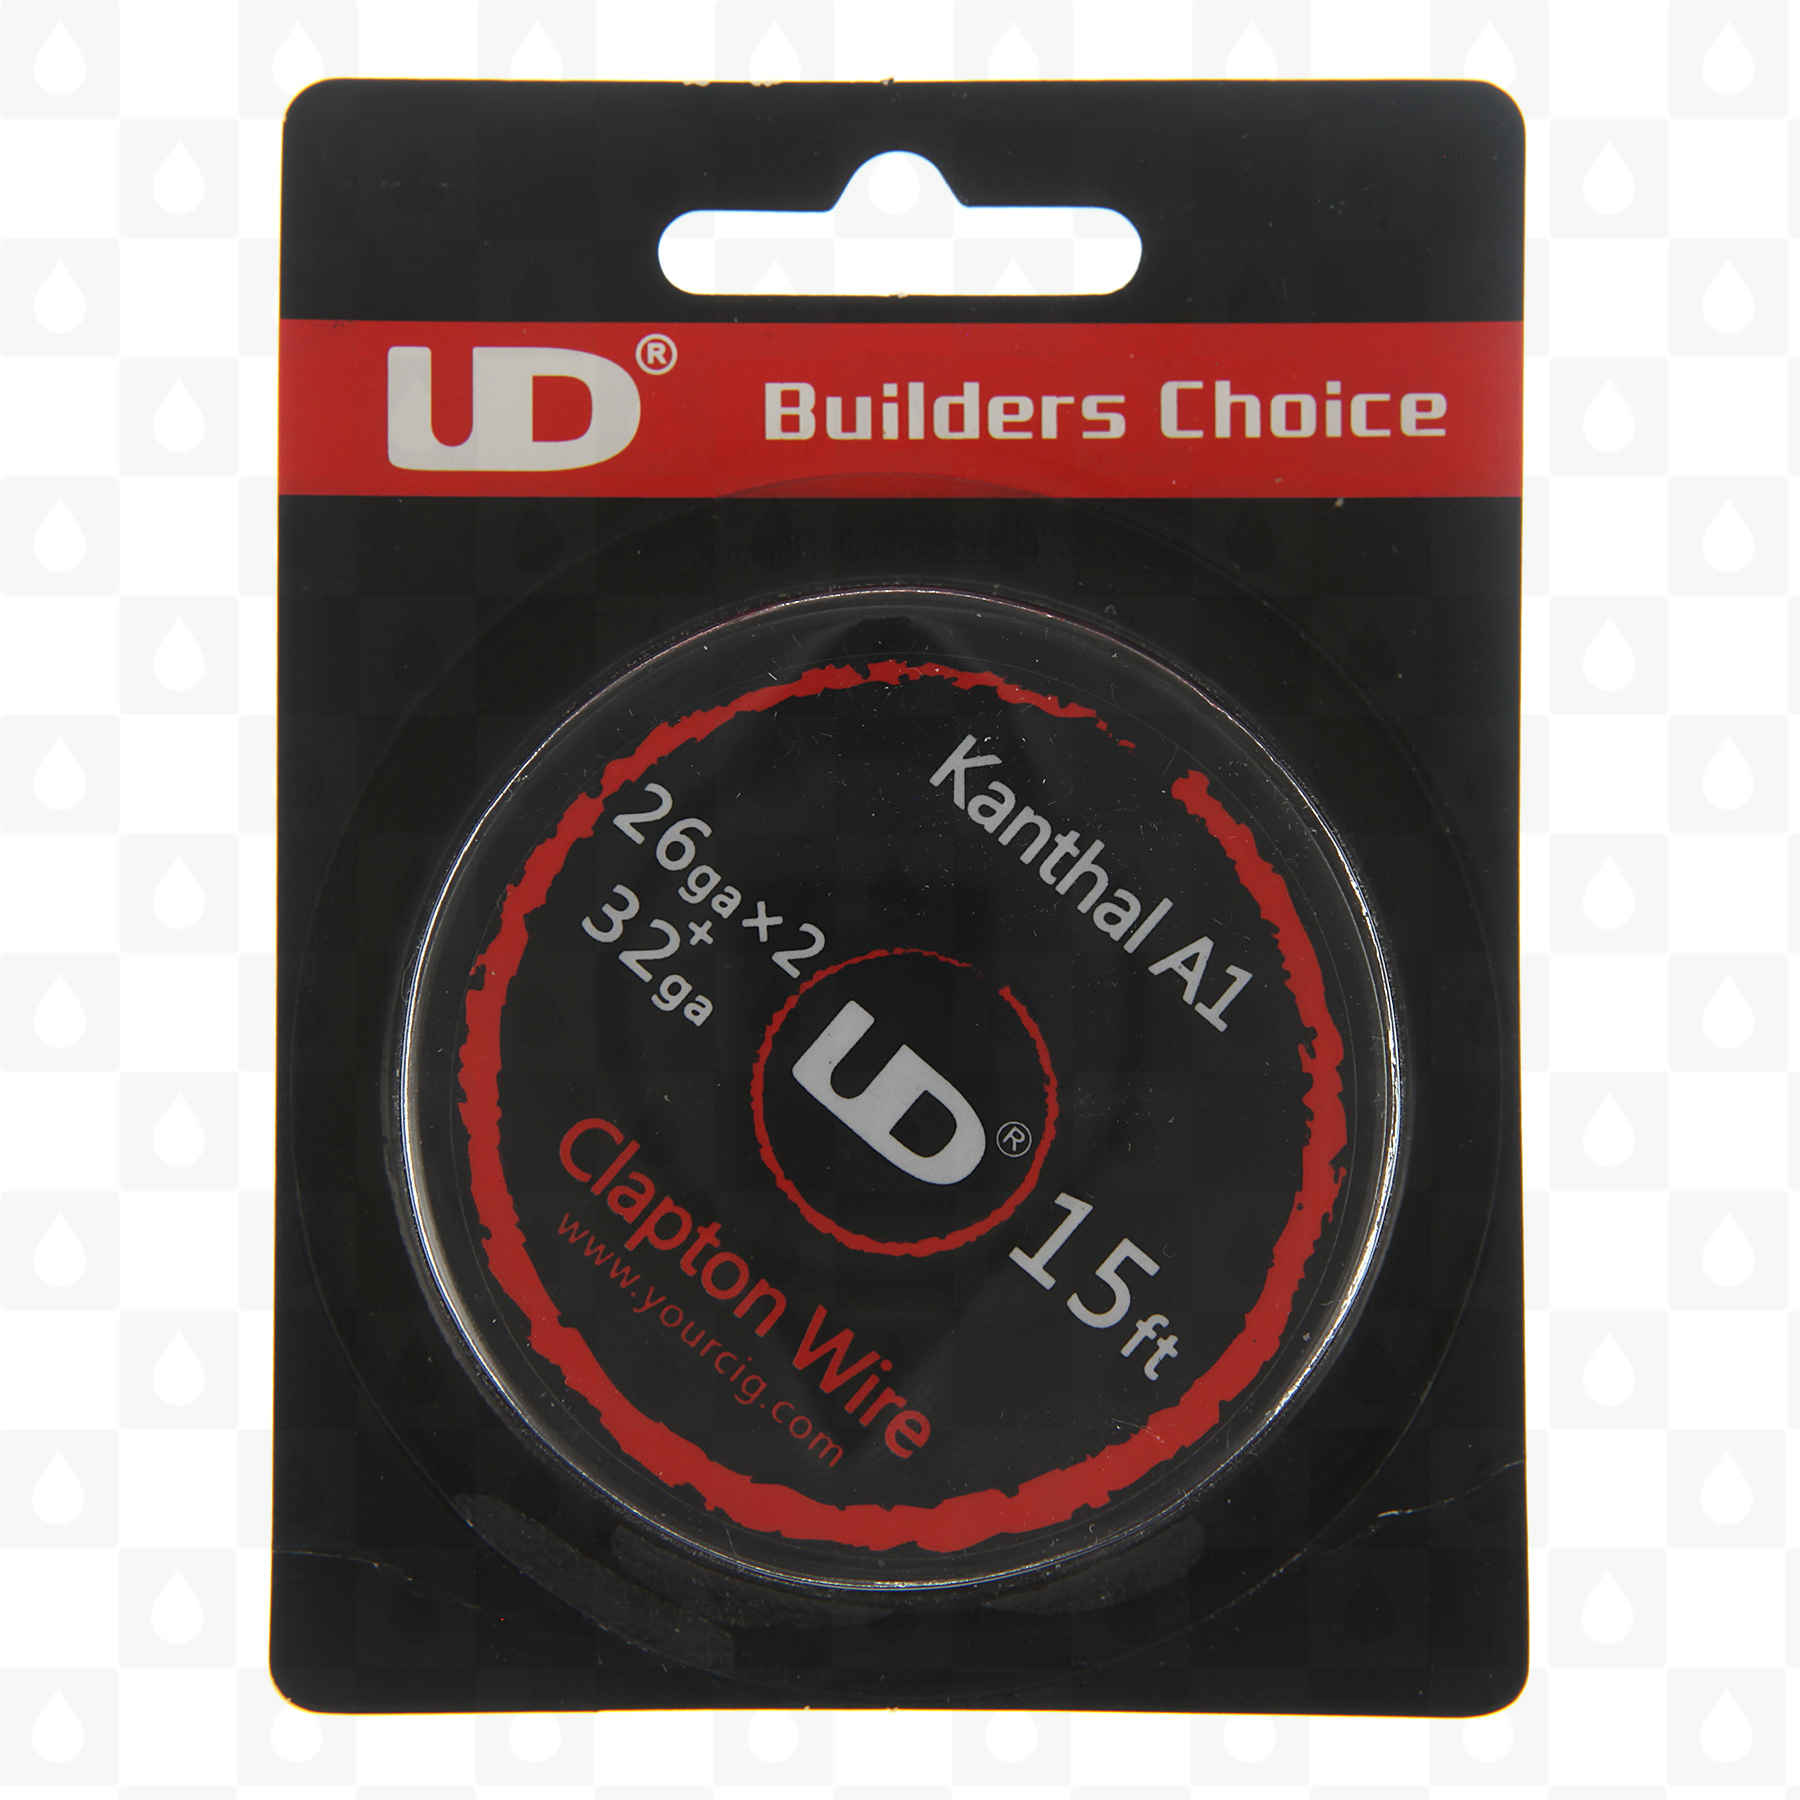 Fused clapton a1 kanthal heat resistance wire 5 meter spools fused clapton a1 kanthal heat resistance wire 5 meter spools gauge options by ud uk vape shop redjuice greentooth Choice Image